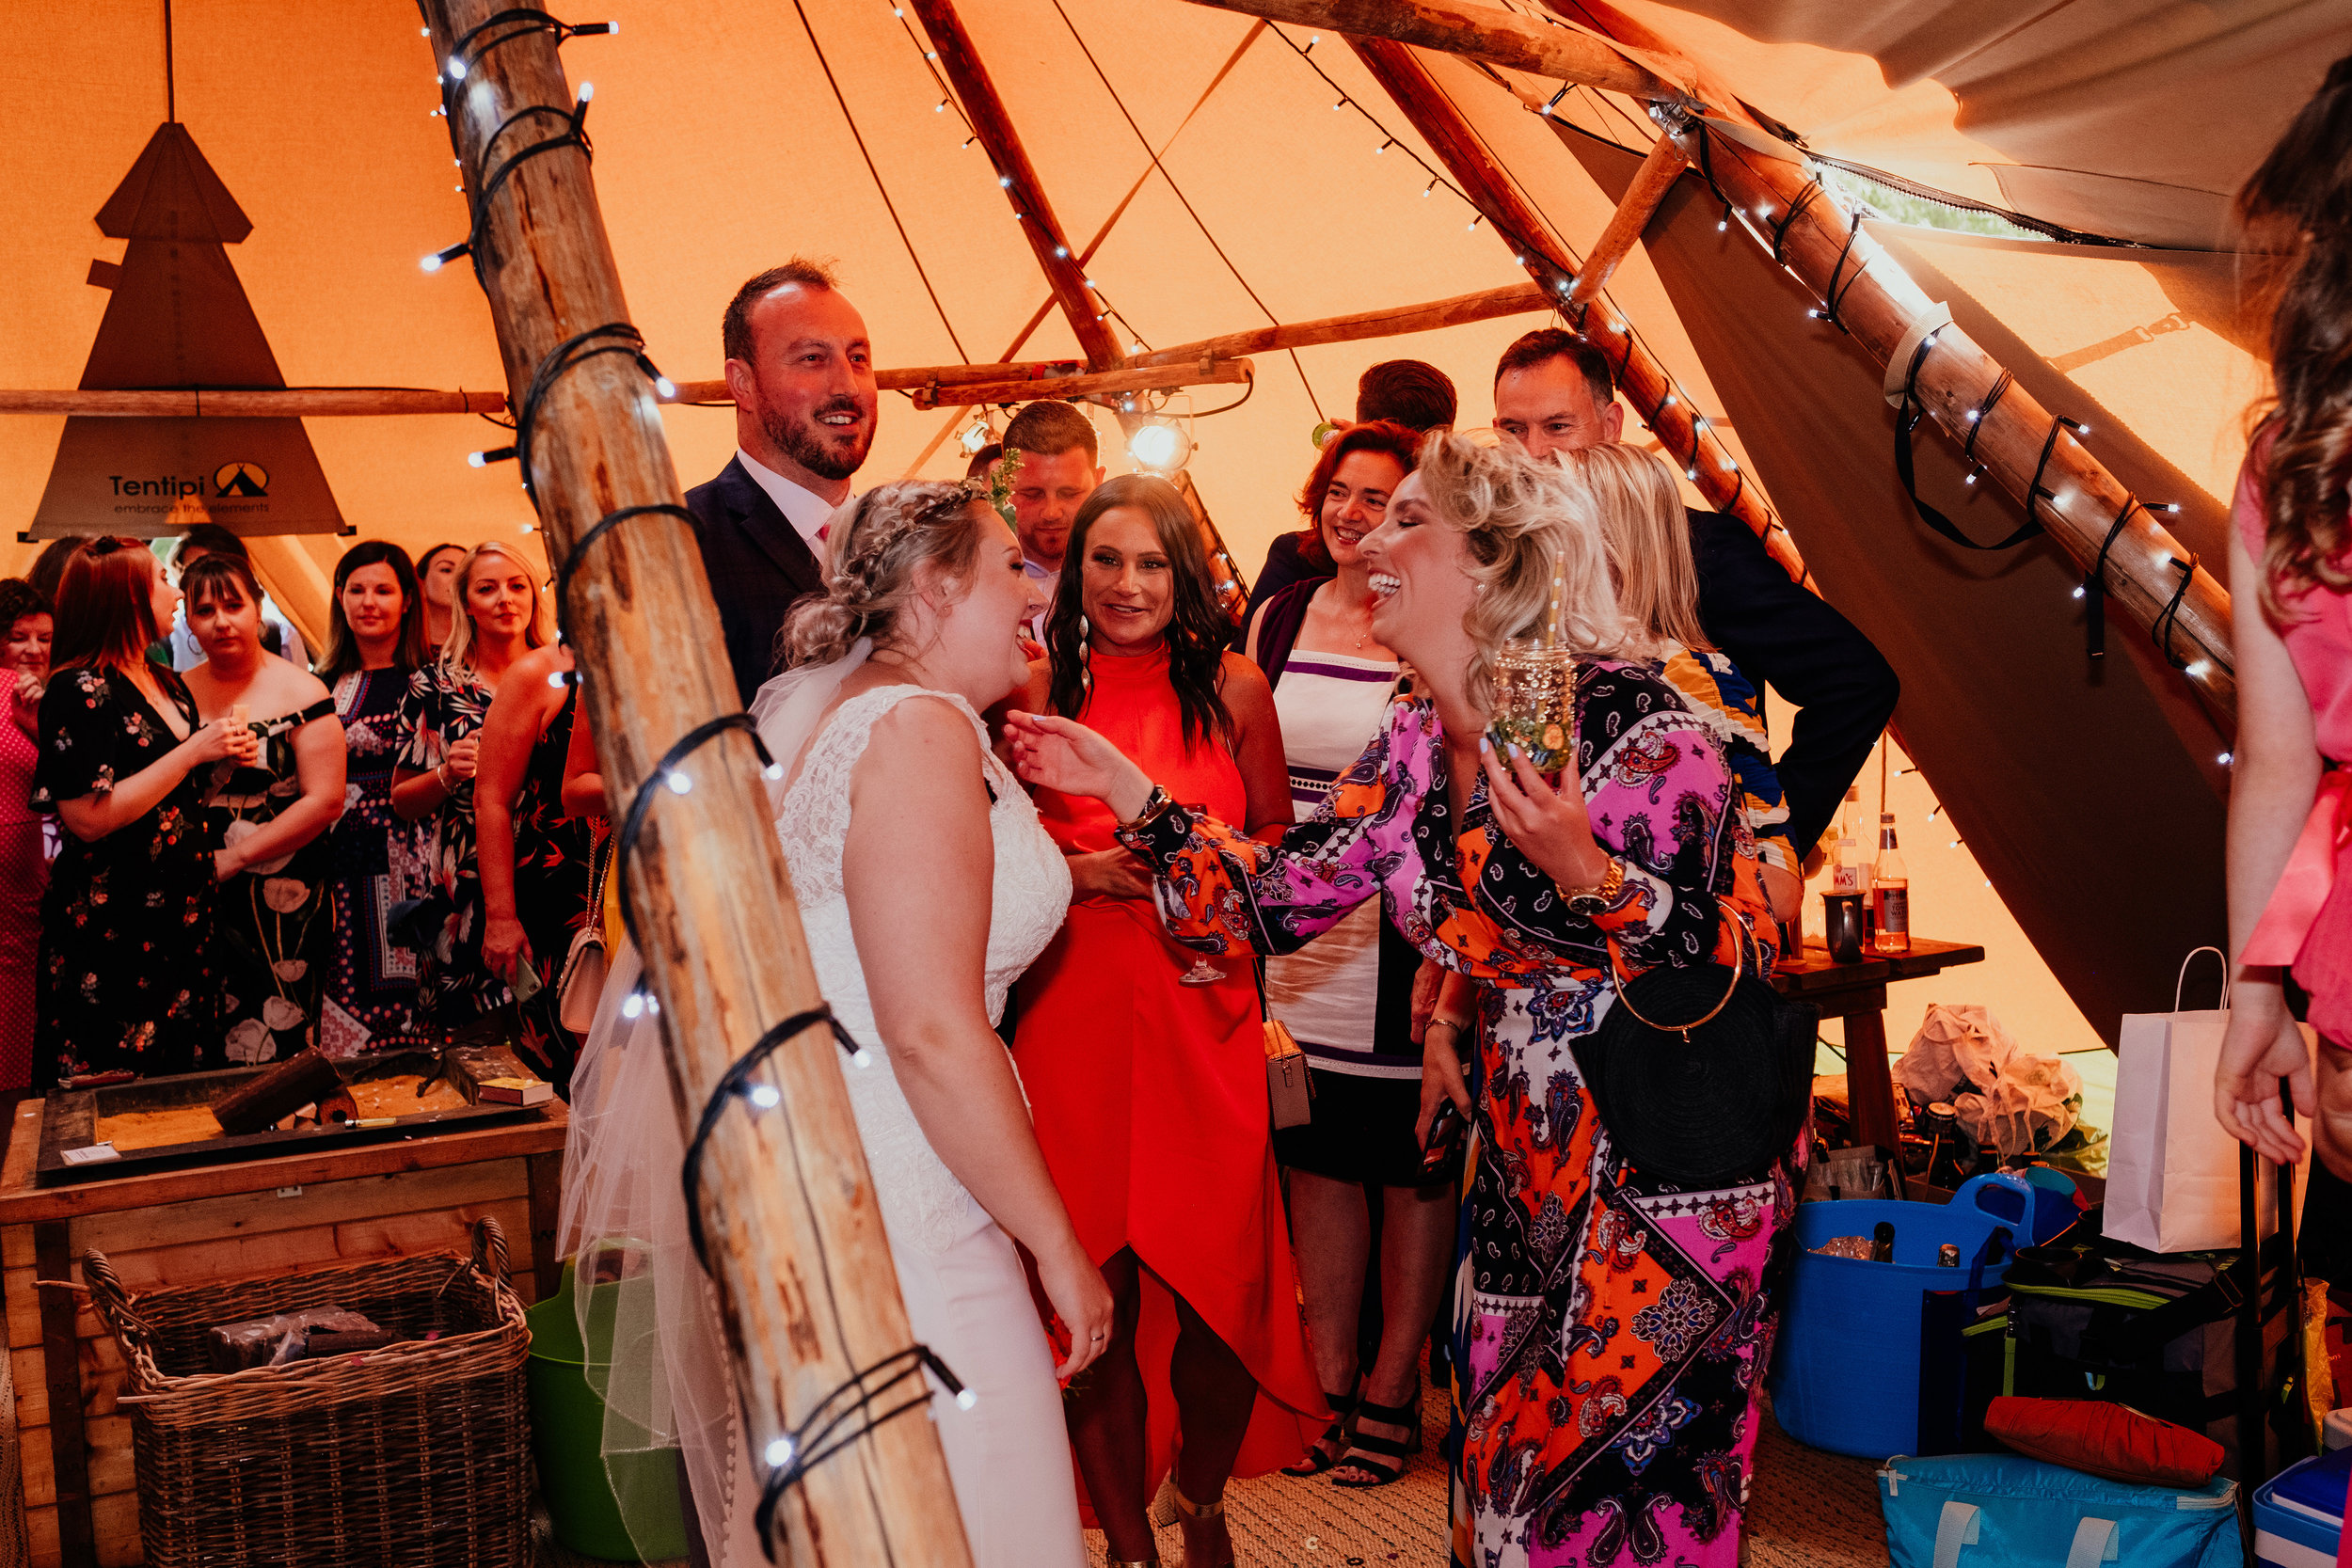 Wedding guests greet bride and groom at vegan tipi wedding